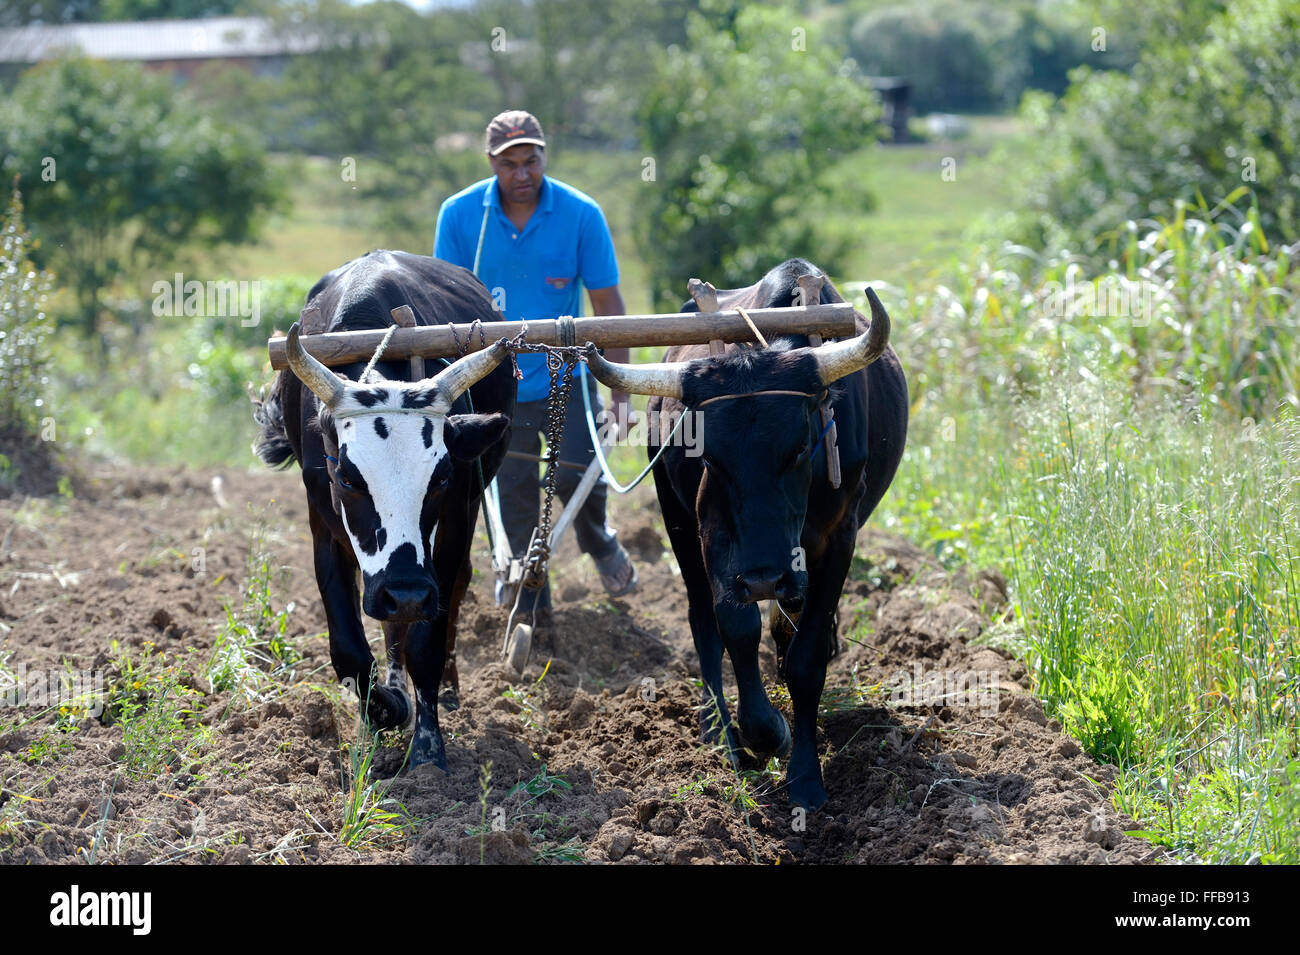 Farmer plowing field with wooden plough, yoke of oxen, Afro-Brazilian settlement Quilombo Monjolo, Sao Lourenco - Stock Image